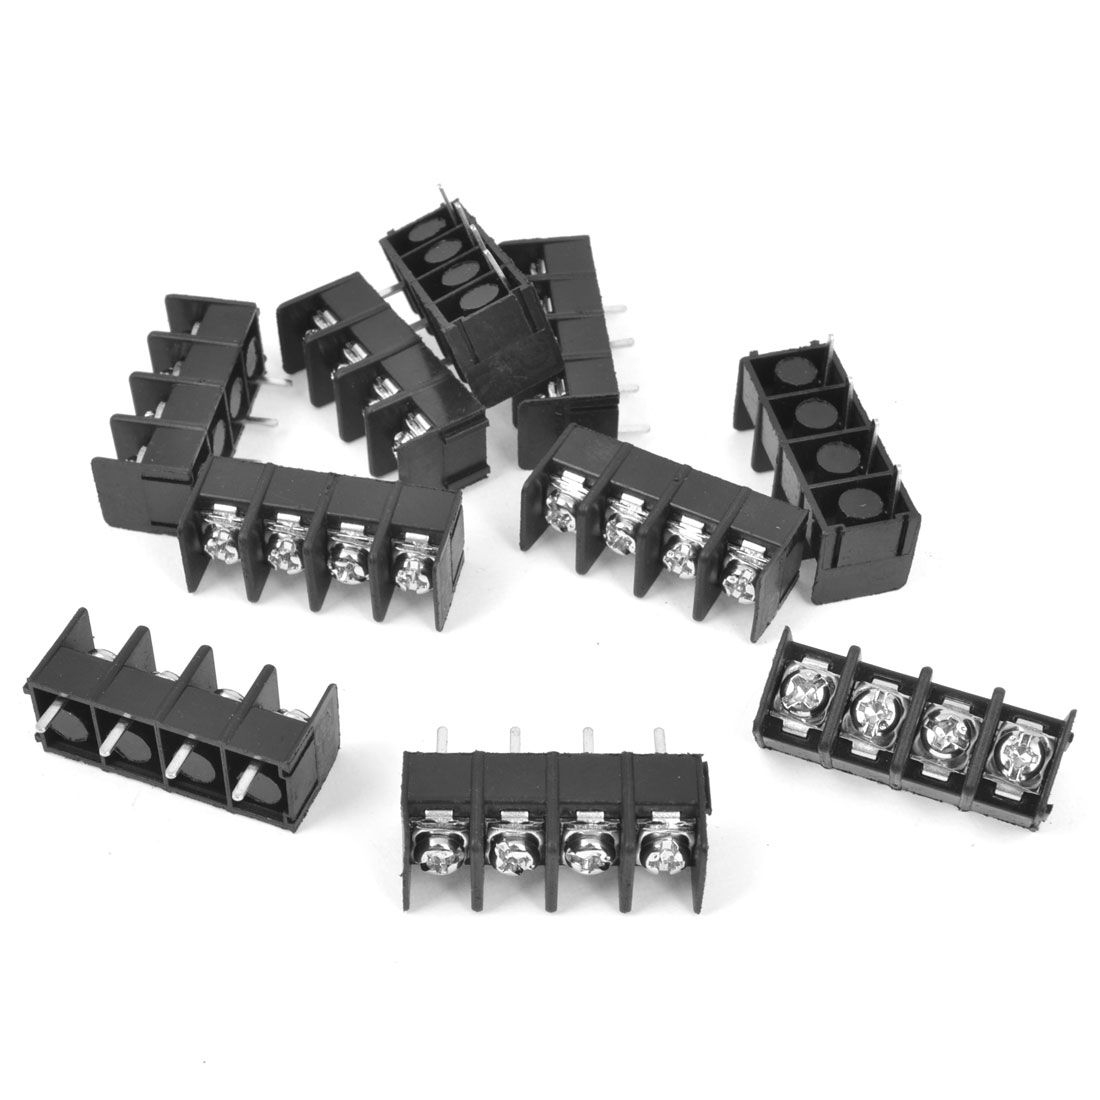 10Pcs 300V 20A 4P Pins PCB Screw Terminal Block Connector 7.62mm Pitch Black